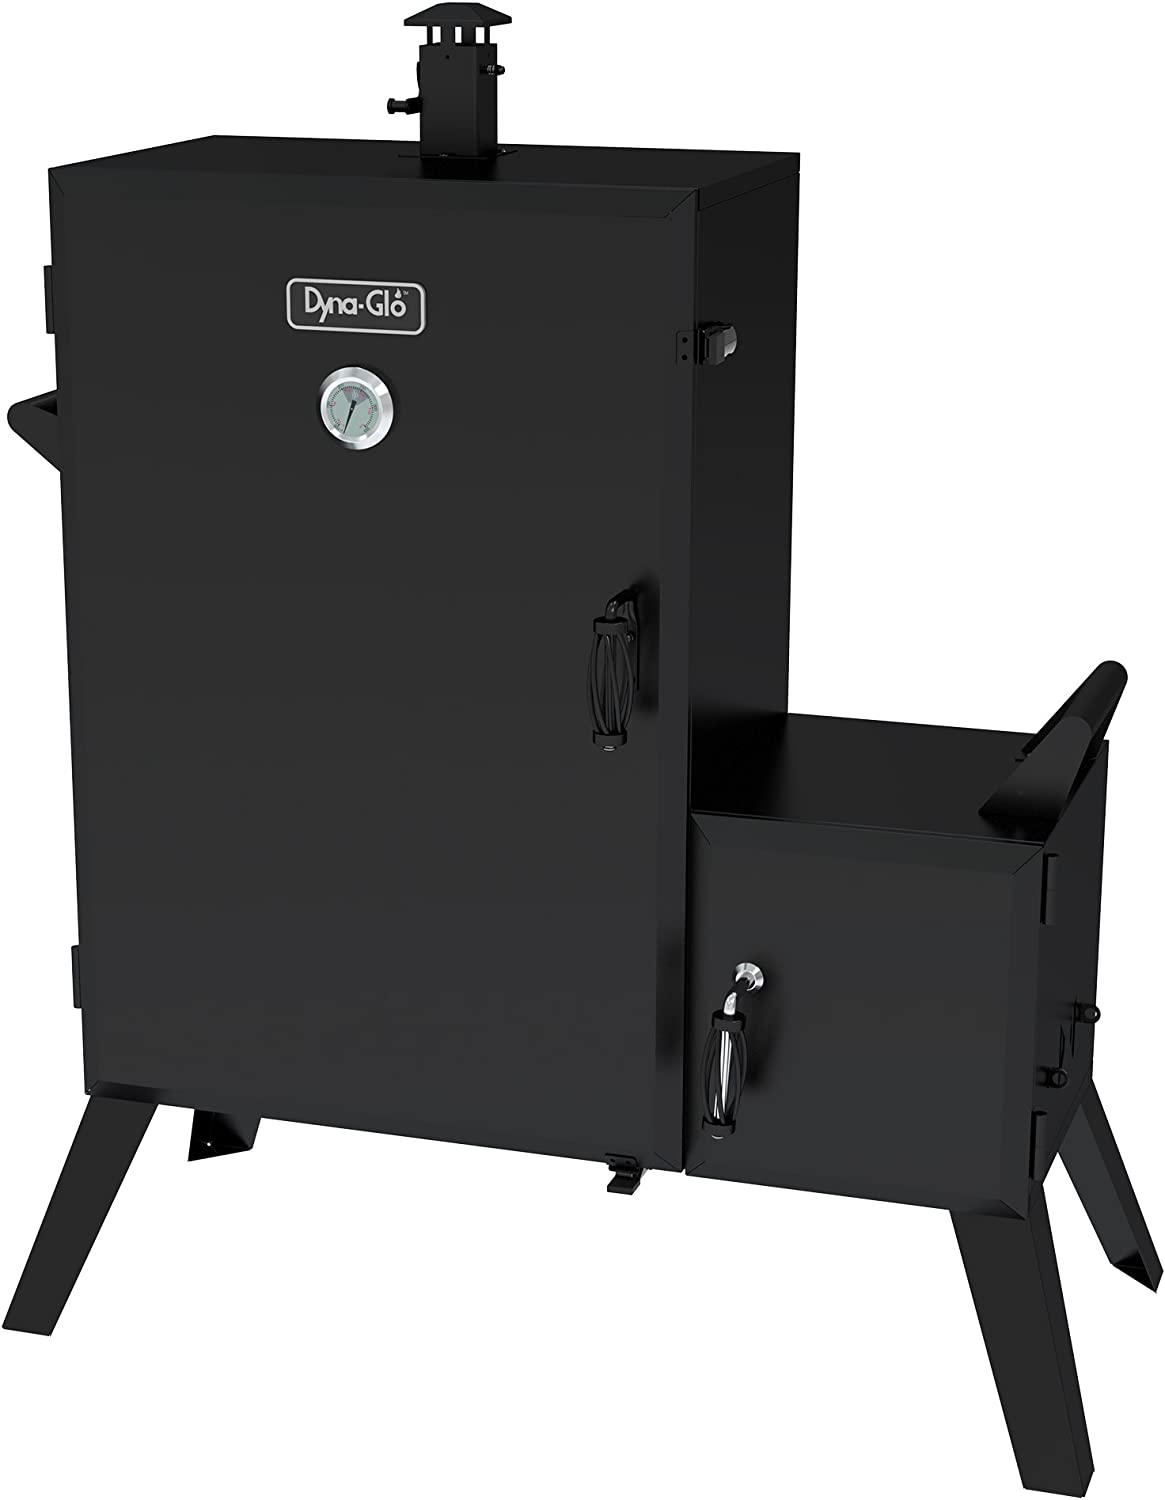 Best Commercial Smoker: Dyna-Glo Wide Body Vertical Offset Charcoal Smoker